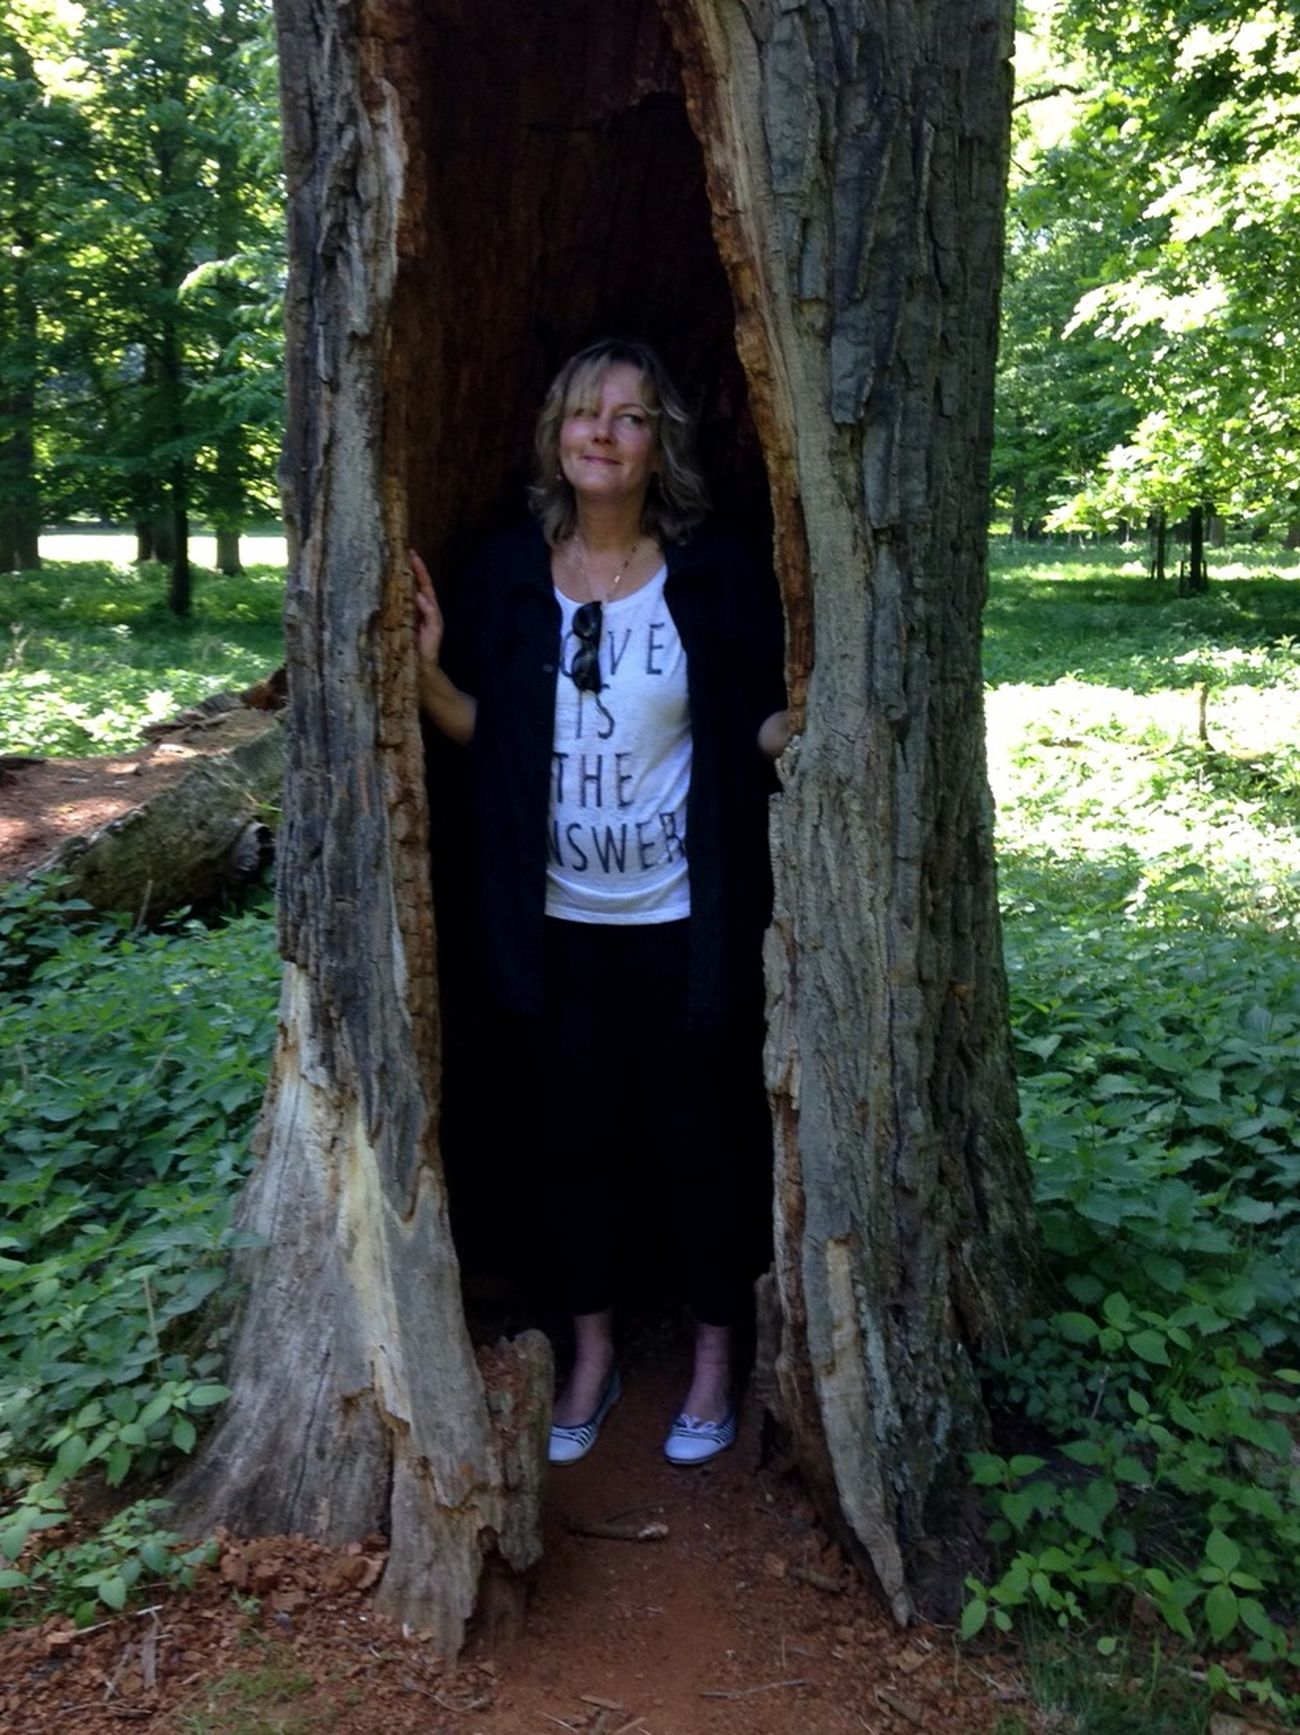 Perfect Moment Memories ❤ Standing In A Hollow Tree For My Friends 😍😘🎁 Enjoyinglife  Express Yourself ❤ Nature Surrounds Me Simple Beauty Love My Life❤ Tranquil Scene Hollowed Tree Treeloverforever Natural Forest Tiergarten Hannover Naturwald